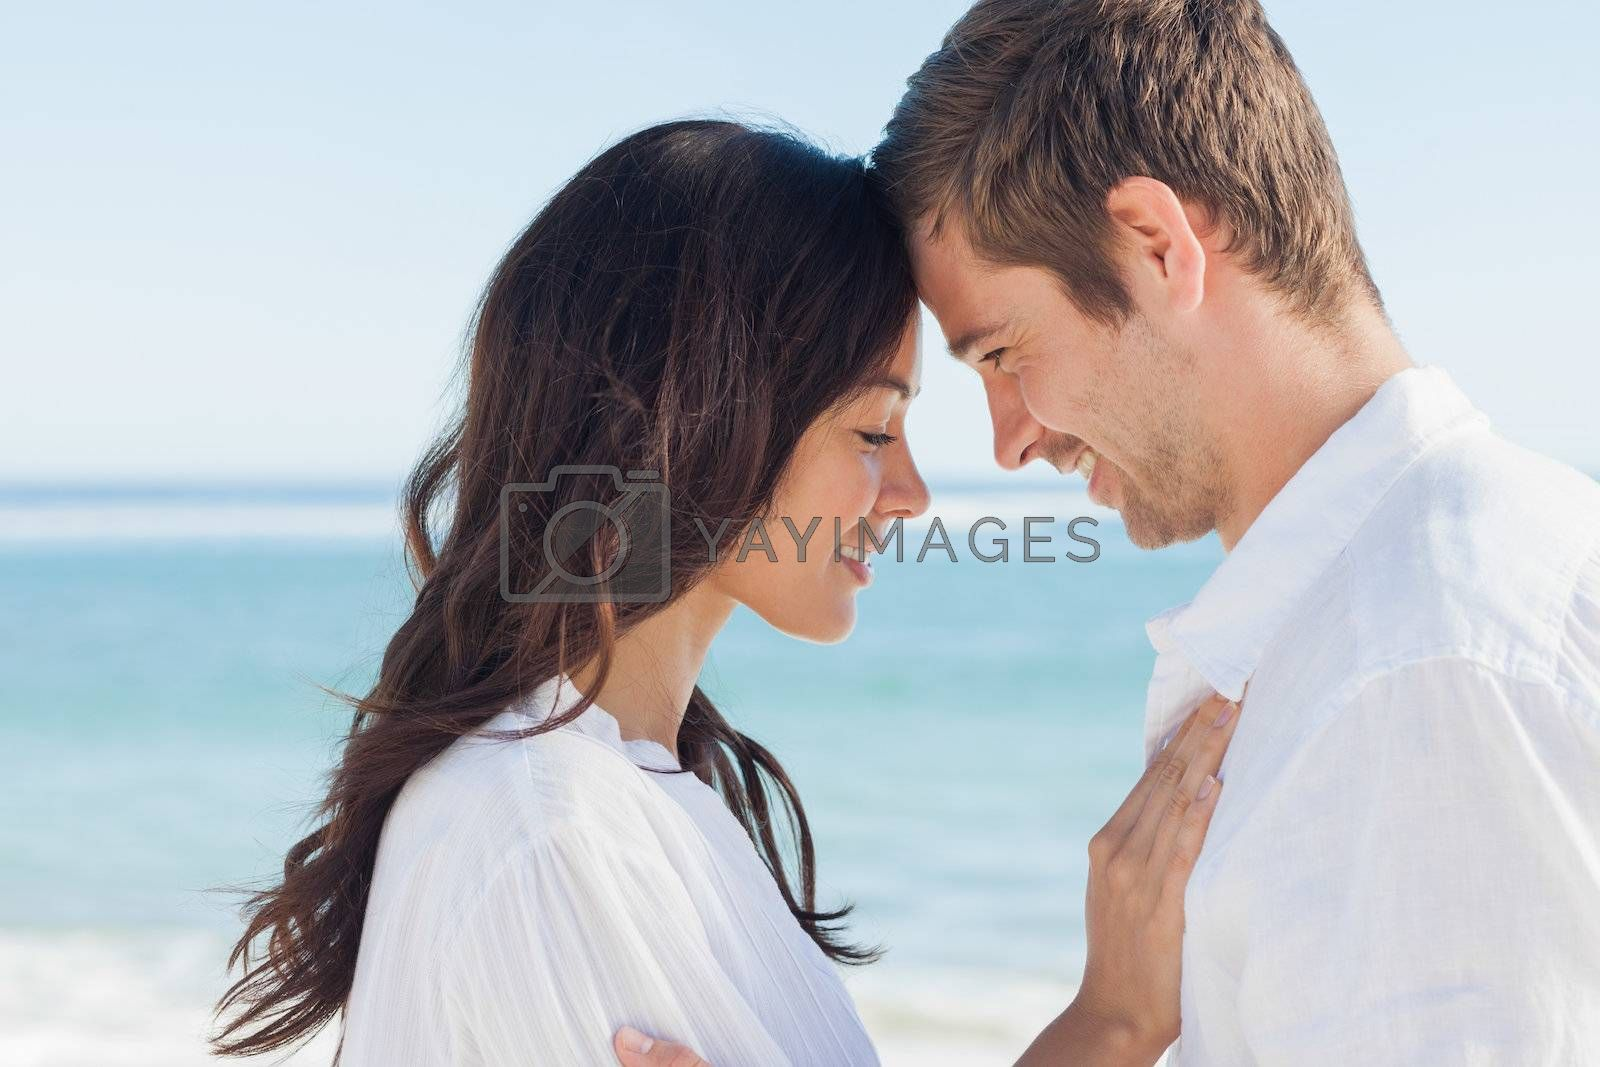 Romantic couple relaxing and embracing on the beach  by Wavebreakmedia